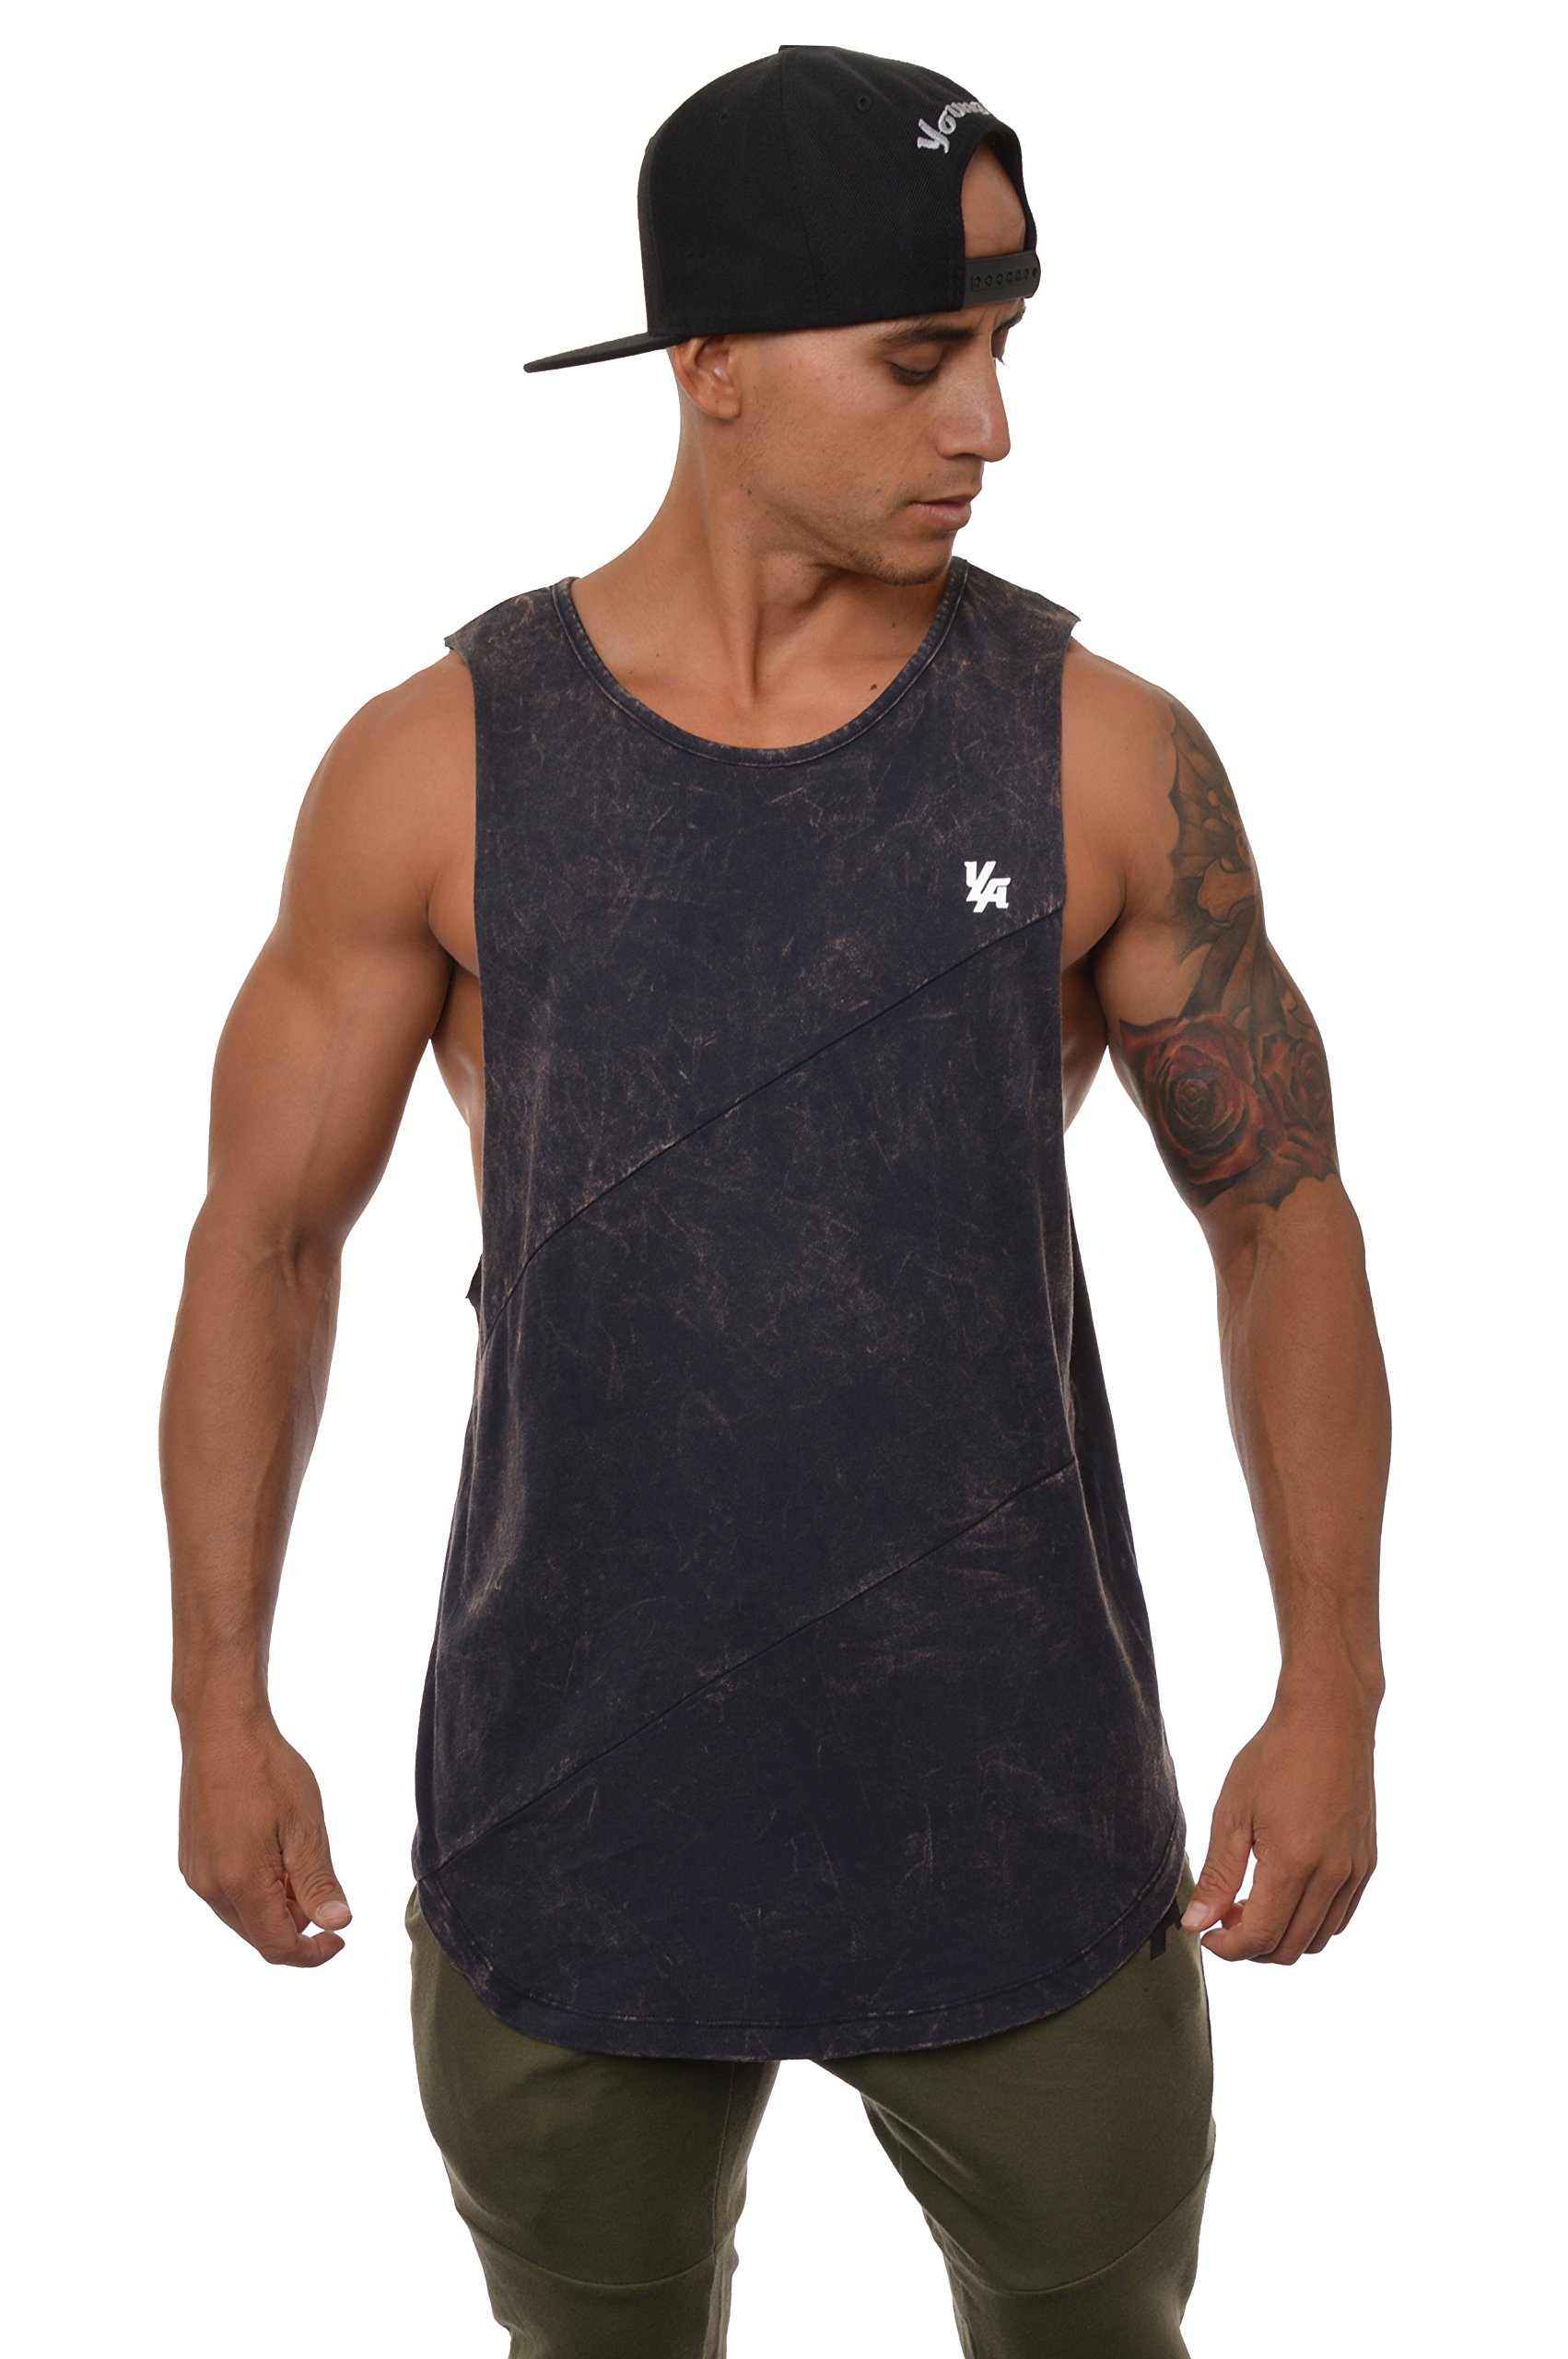 YoungLA Long Tank Tops for Men Muscle Shirt Bodybuilding Gym Athletic Training Sports Everyday Wear 306 (Small, Navy Acid Washed)